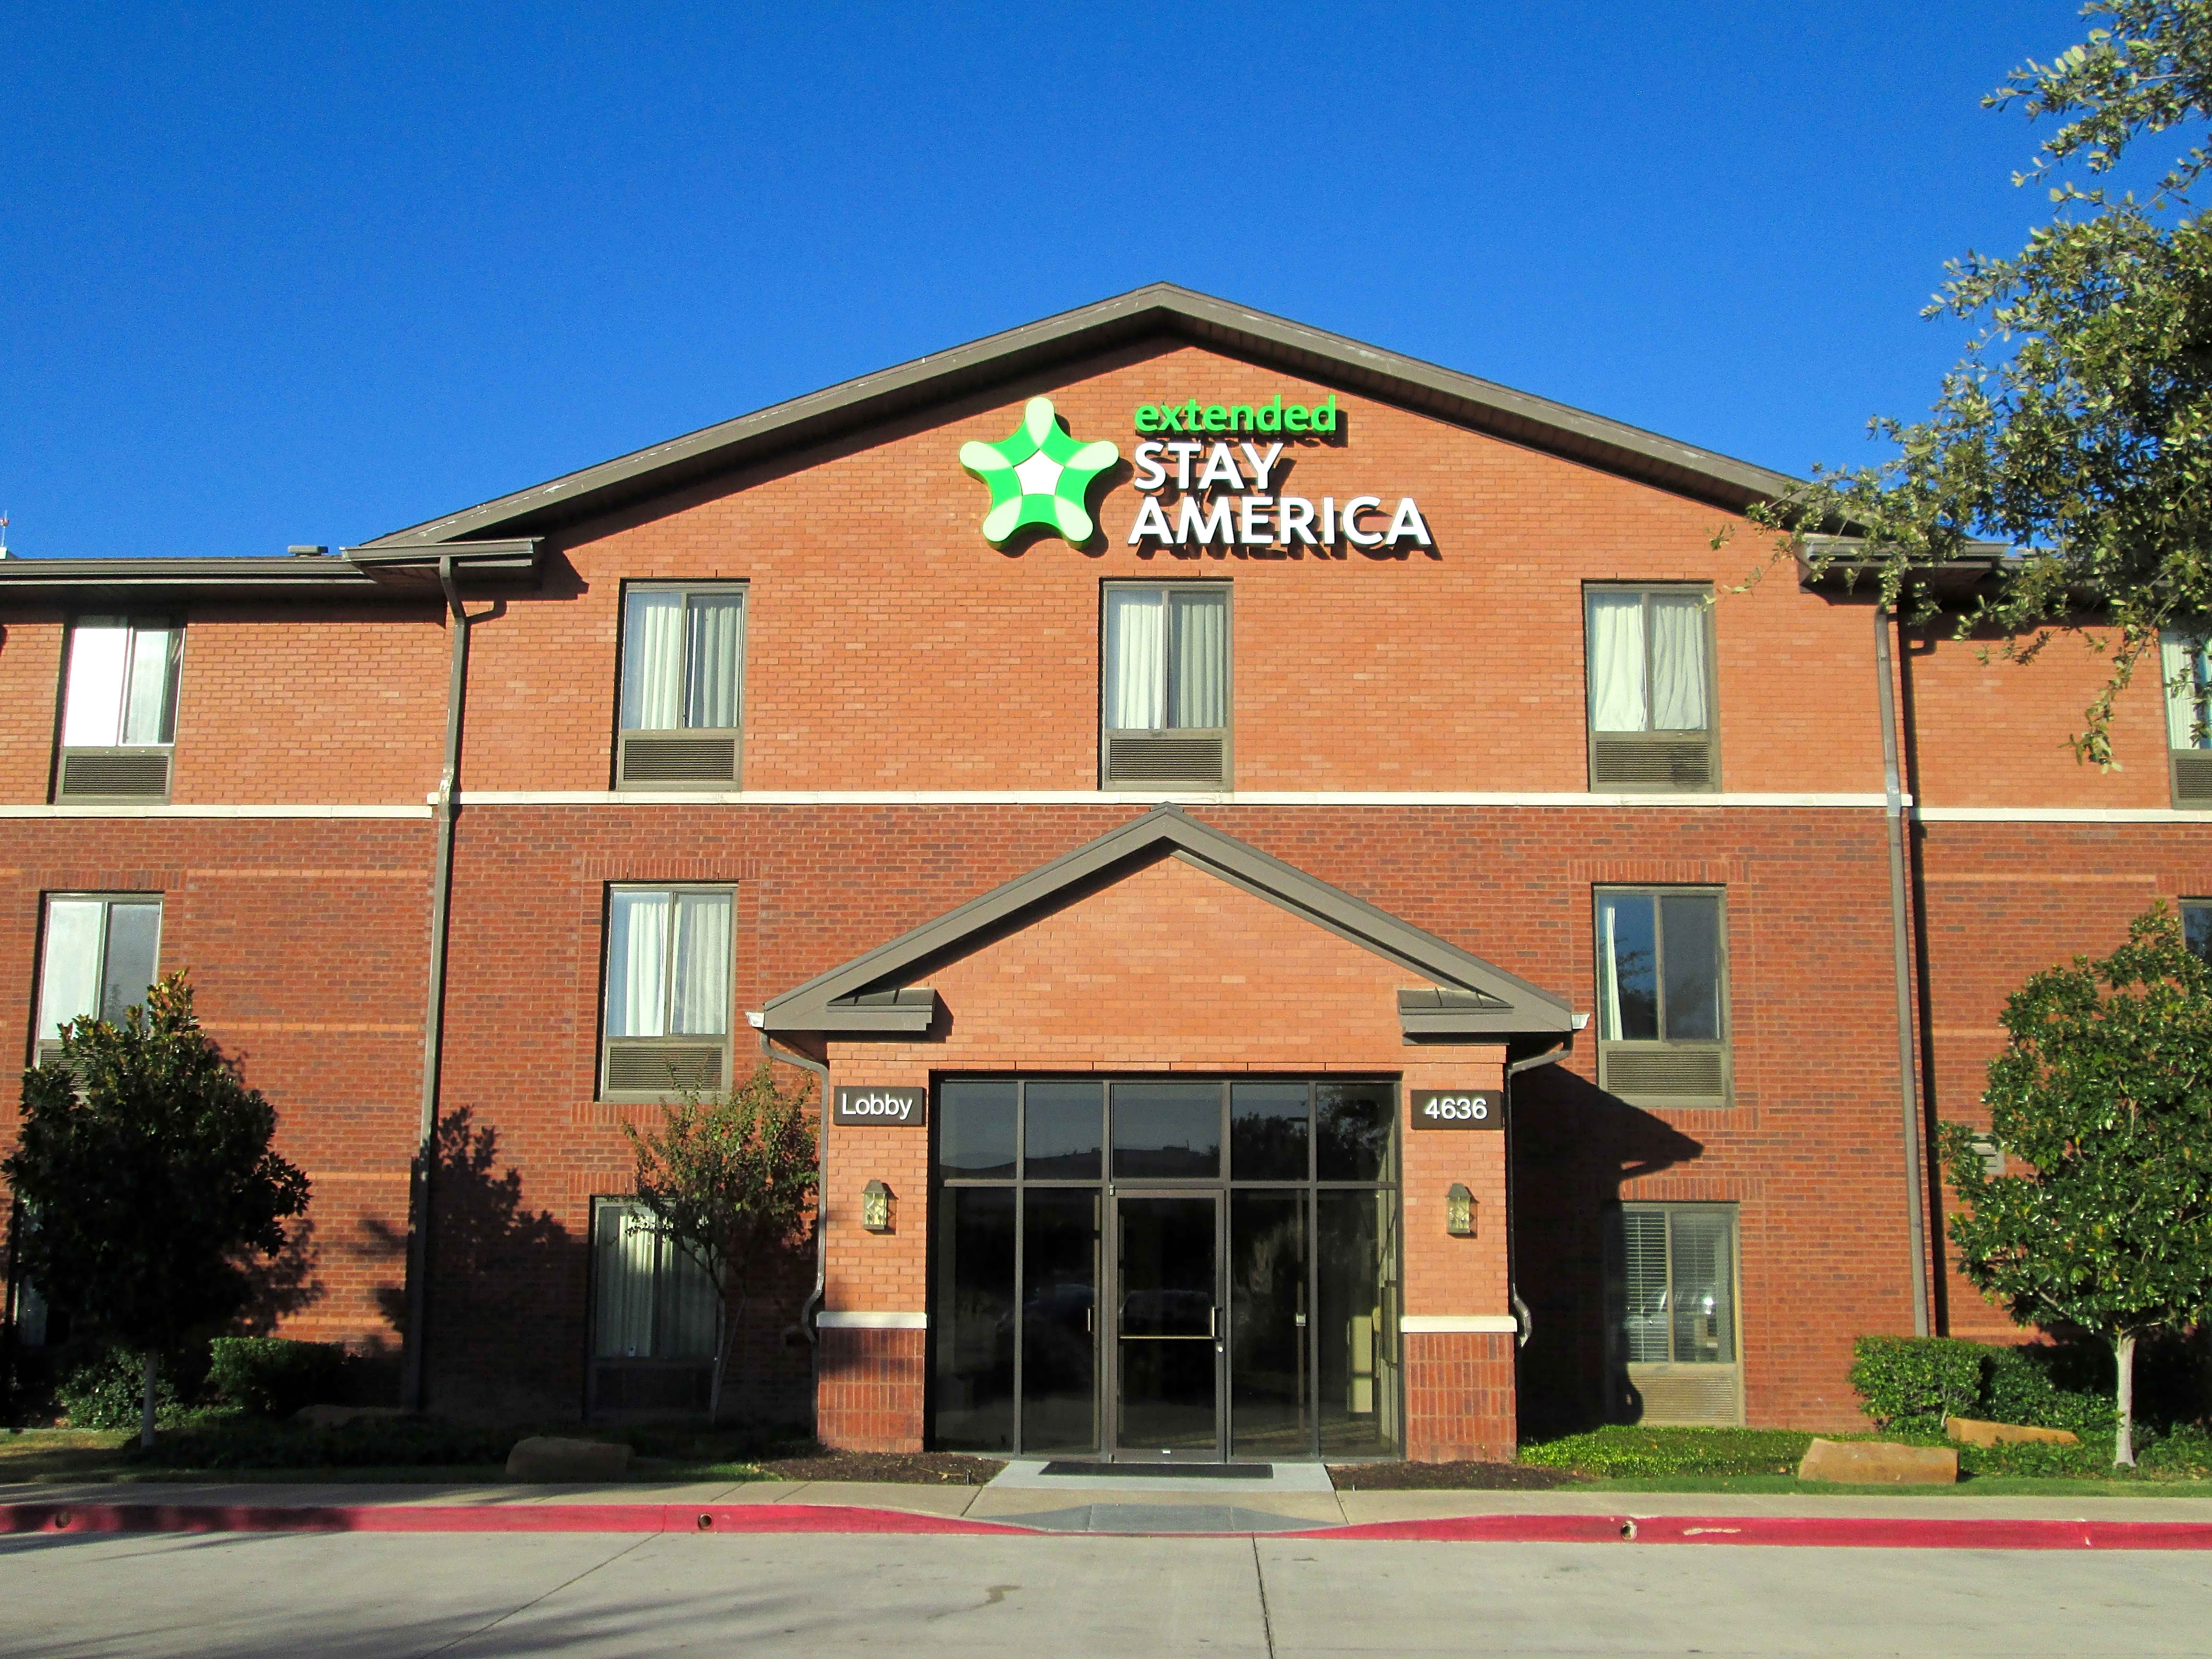 Apartments Near UT Dallas Furnished Studio - Dallas - Plano Parkway - Medical Center for University of Texas at Dallas Students in Richardson, TX